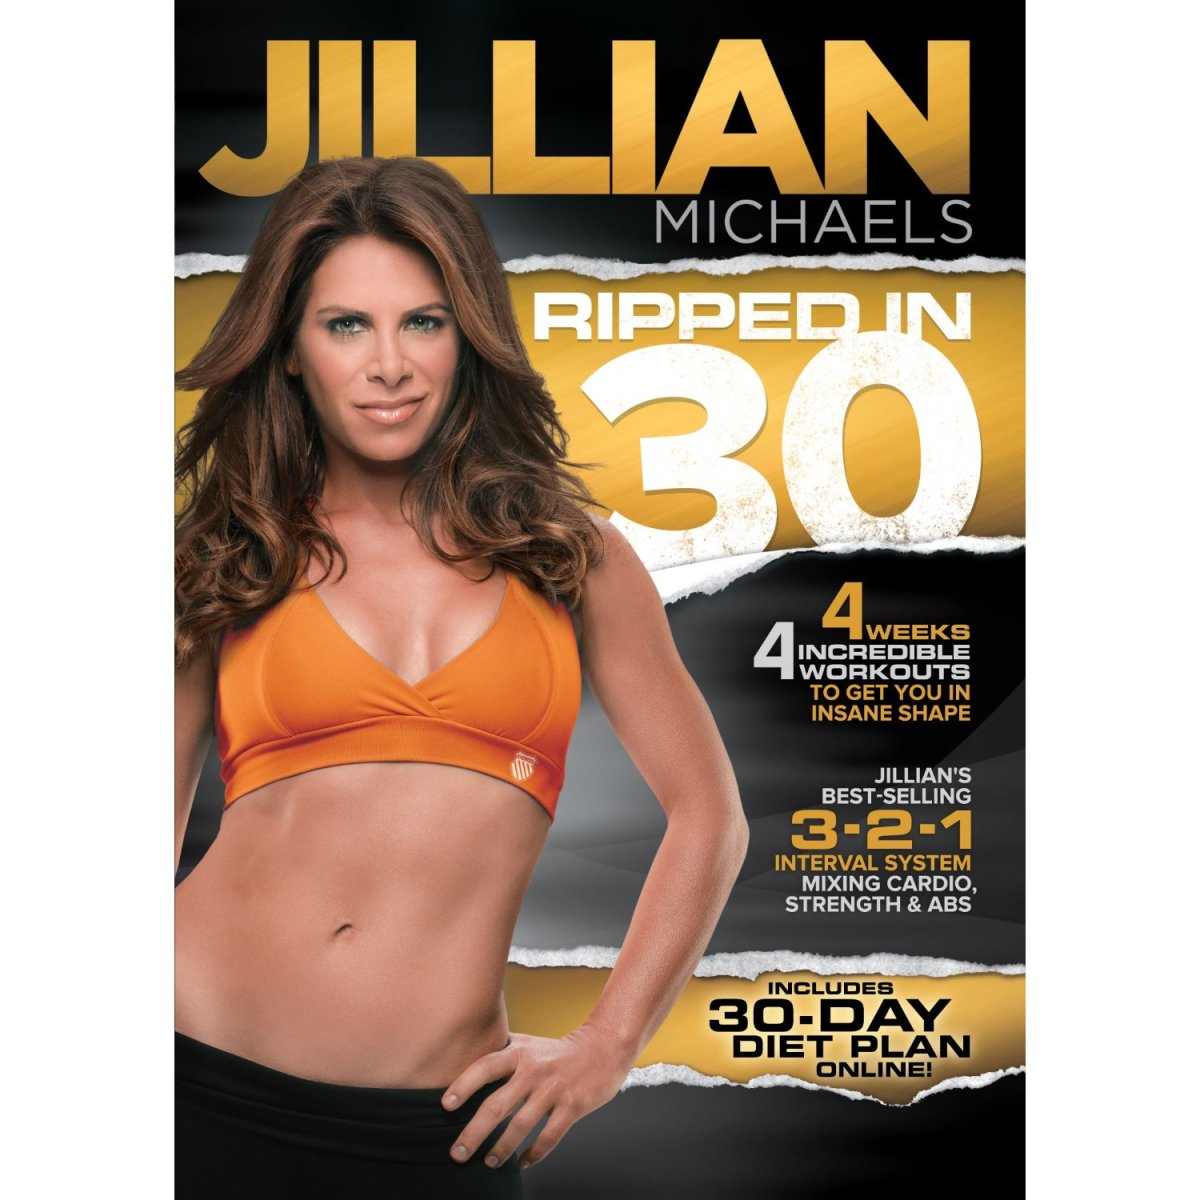 Review of Jillian Michaels' Ripped in 30 DVD